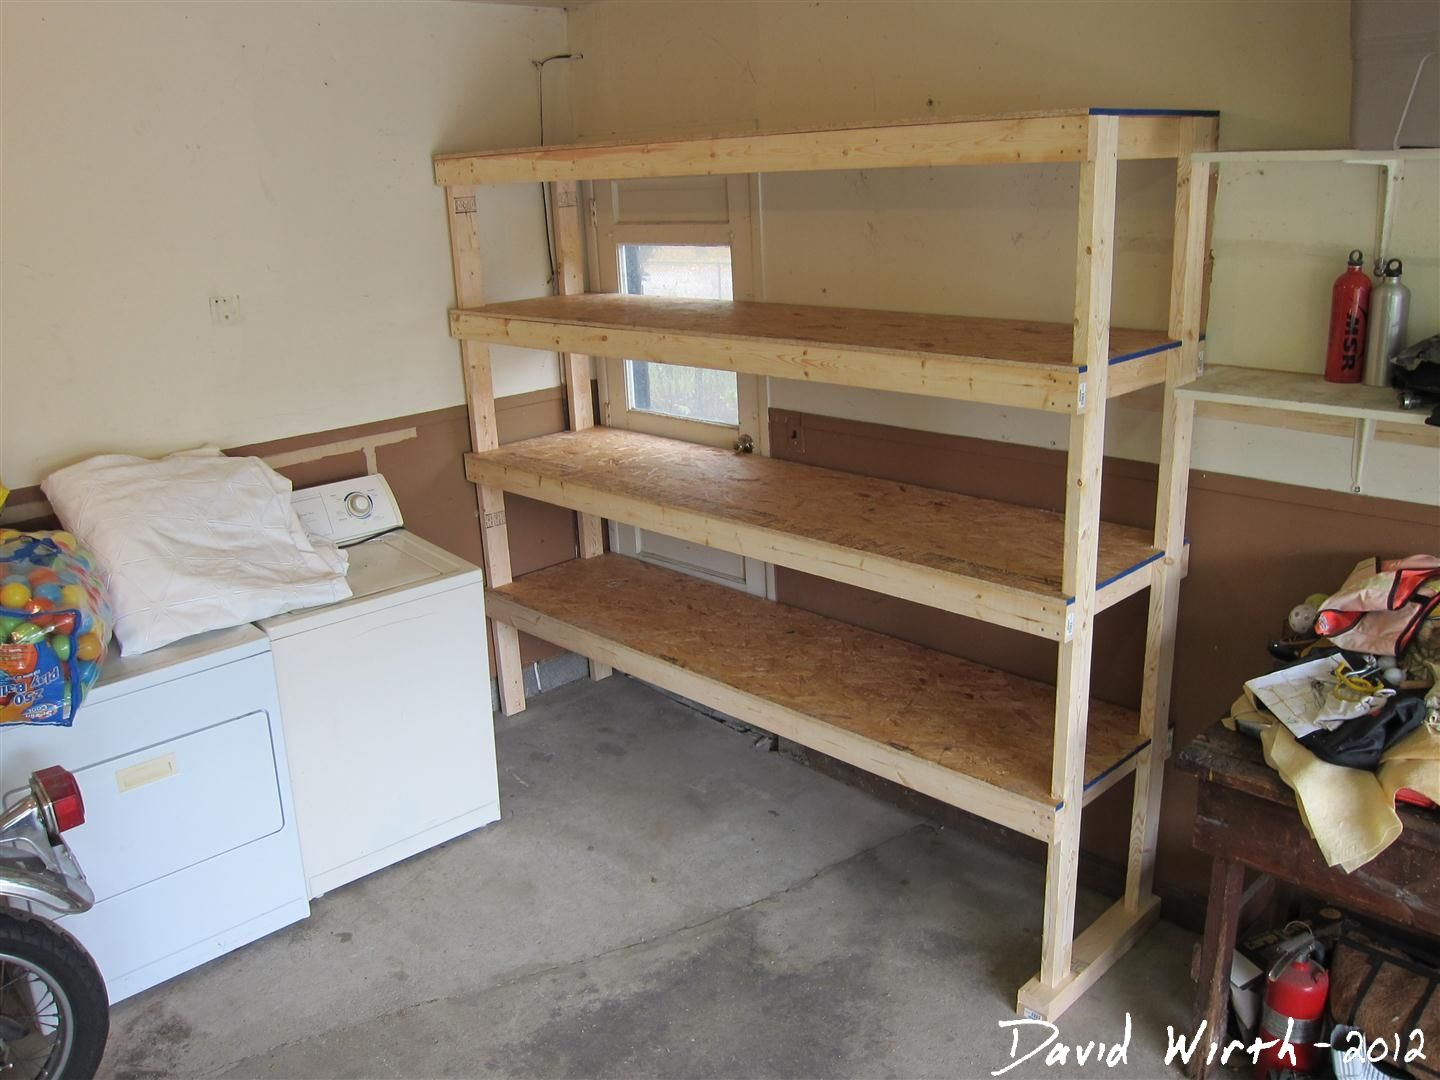 Heavy Duty 2x3 And 2x4 Storage Units With Plywood Shelves They